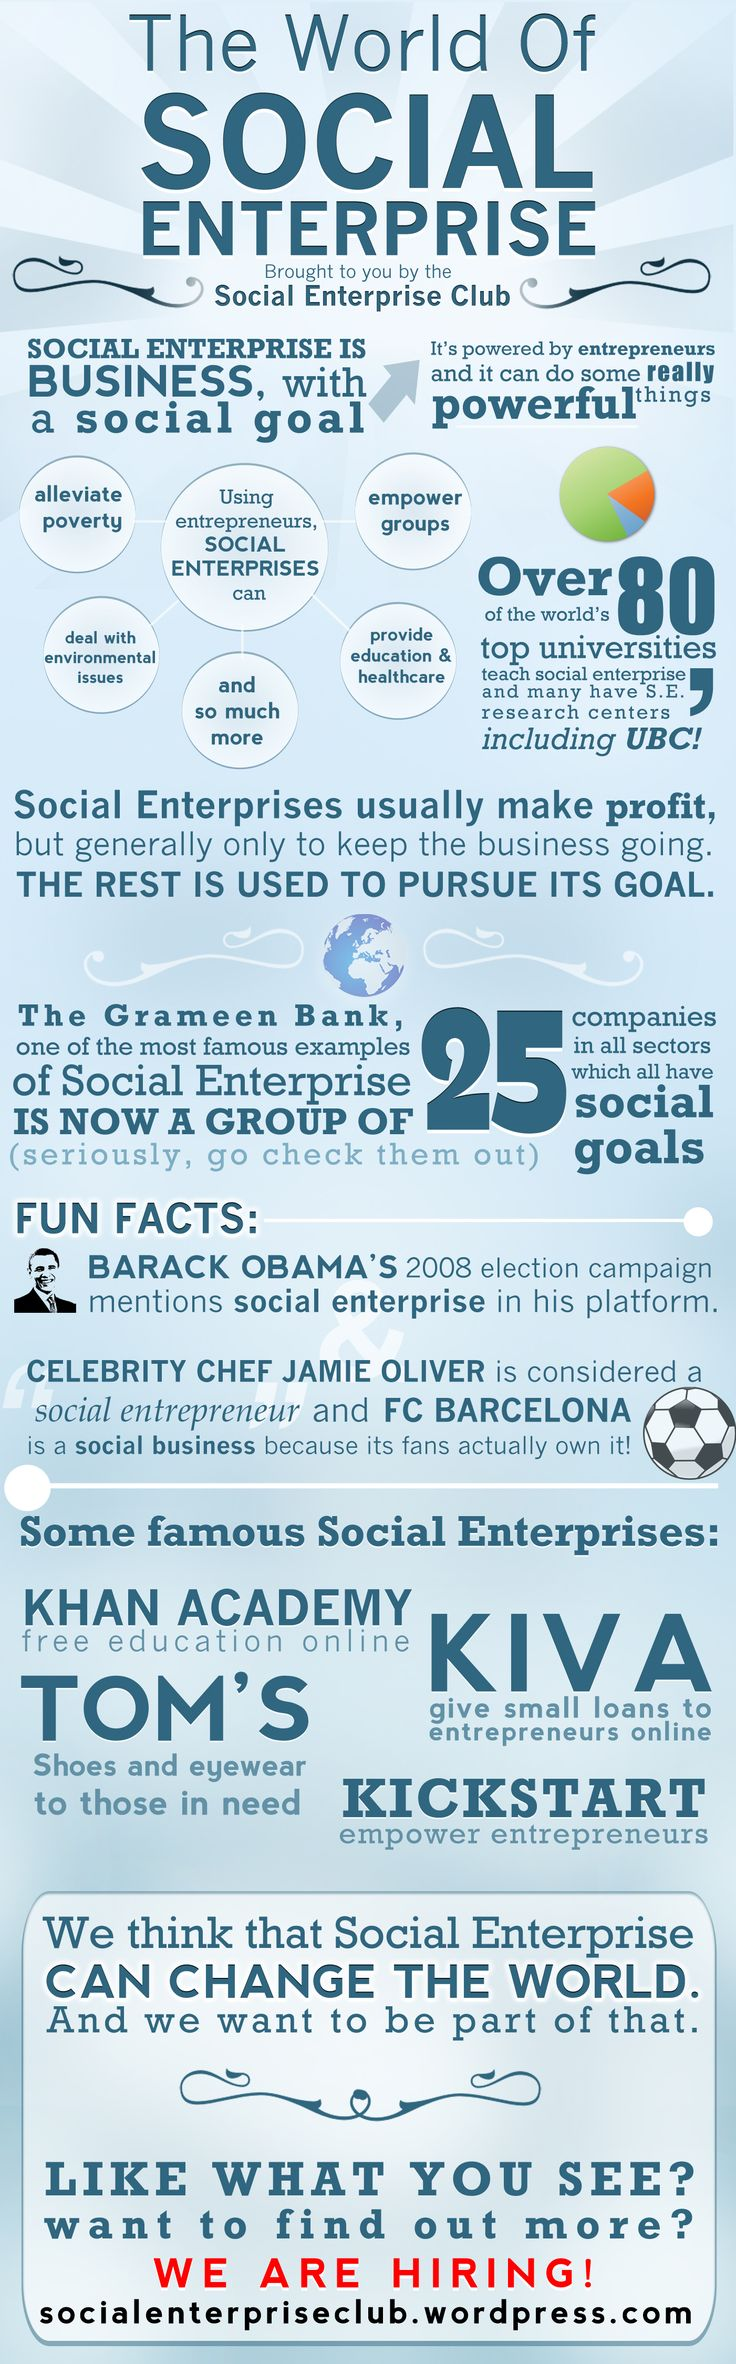 The world of Social Enterprise https://www.facebook.com/instituteofsocialentrepreneurship